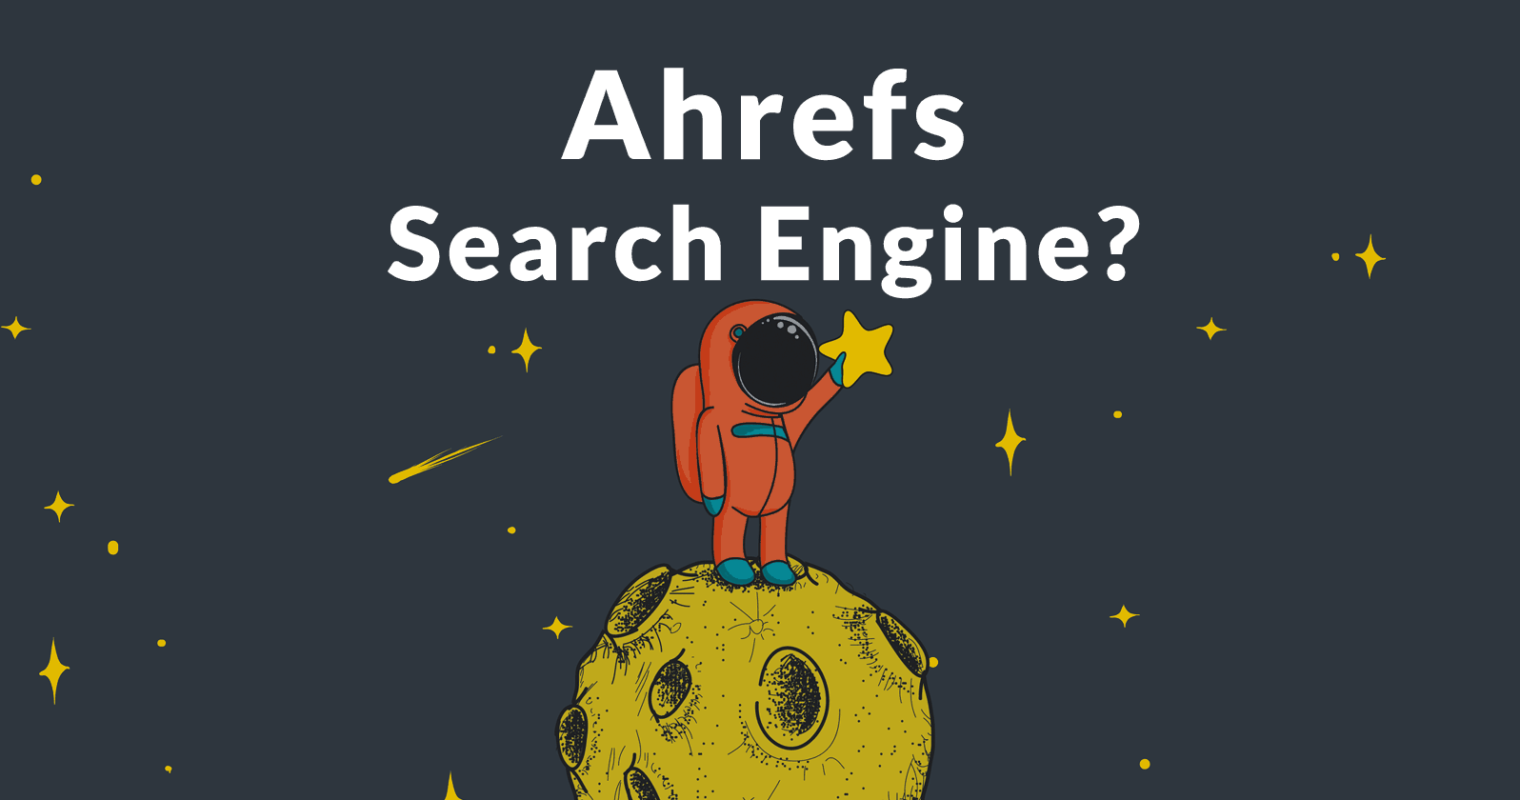 Ahrefs Announces Plan for New Search Engine